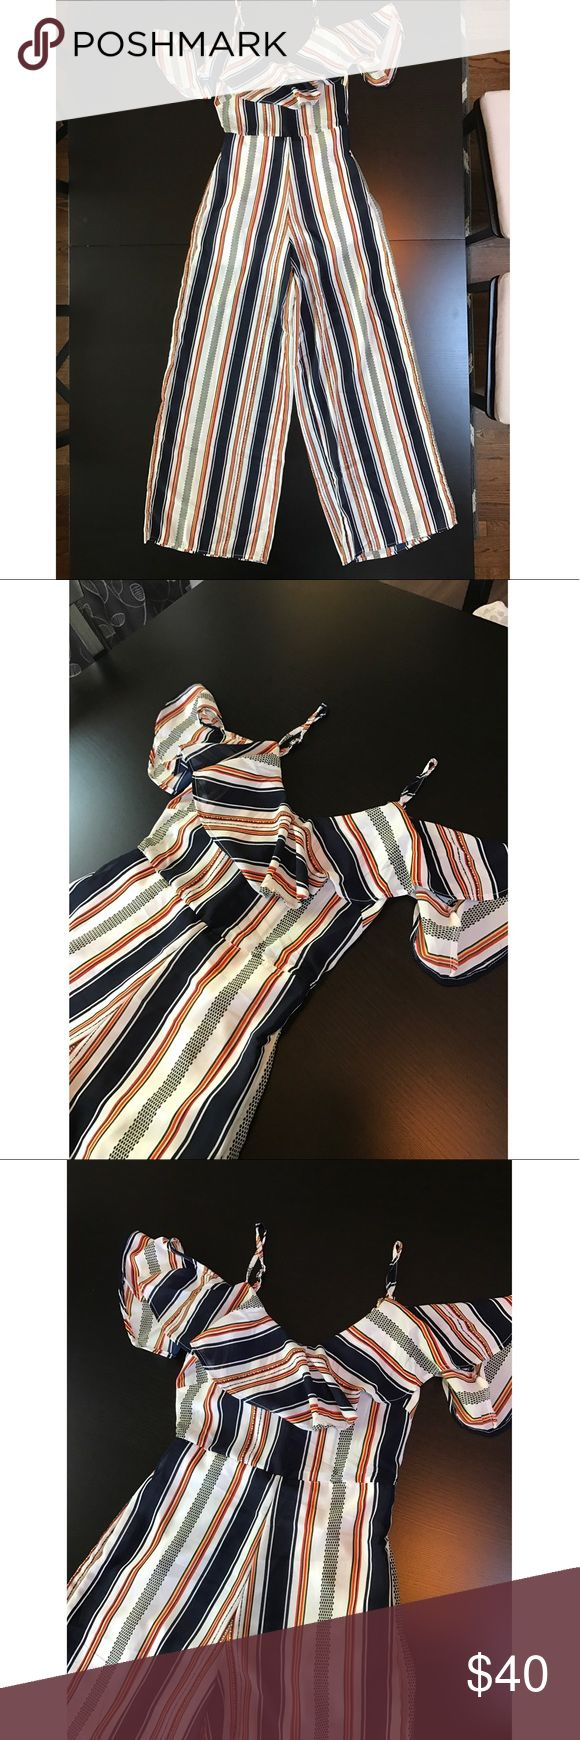 NWT Striped Jumpsuit New with tags! Boutique cold shoulder striped jumpsuit with adjustable straps! Size women's XS. Lined with shorts. Pants Jumpsuits & Rompers